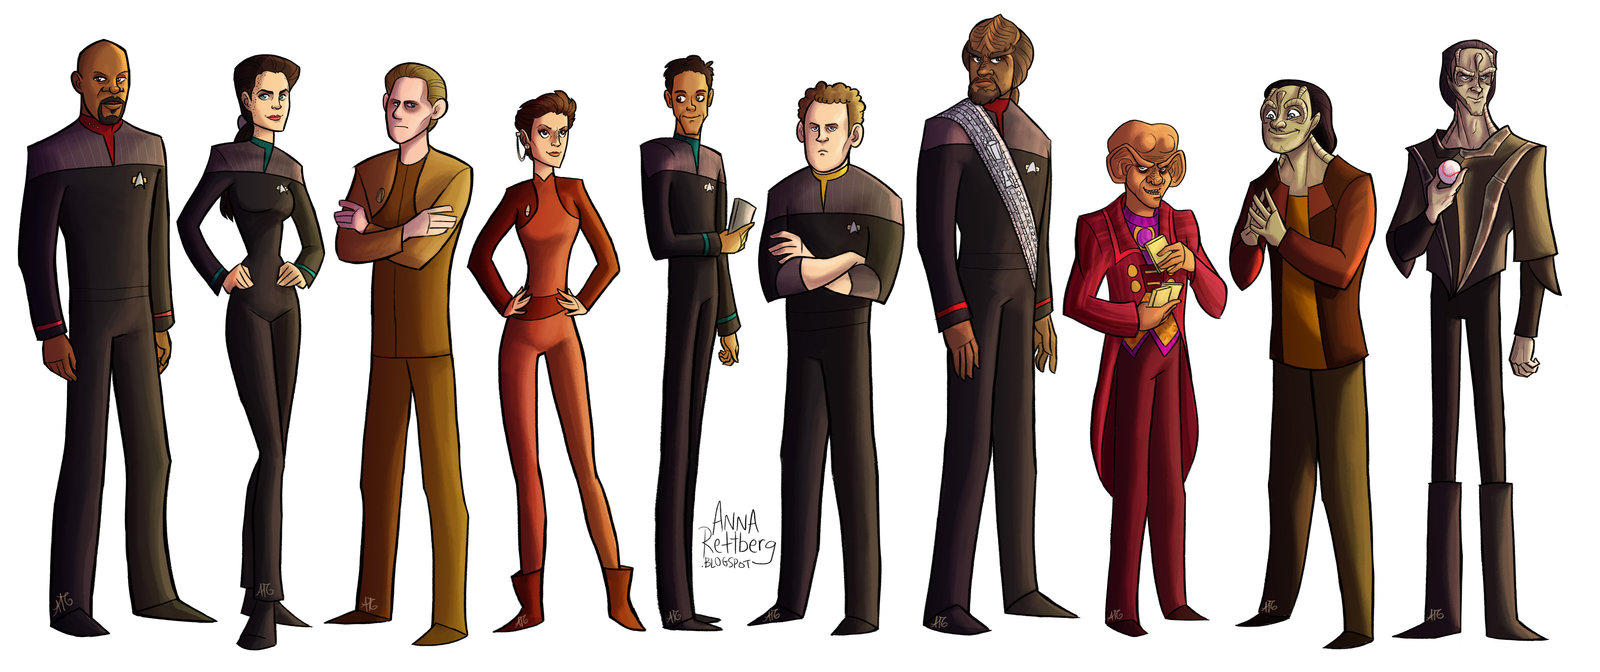 Awesome Illustration of Star Trek DS9 cast by Anna Rettberg